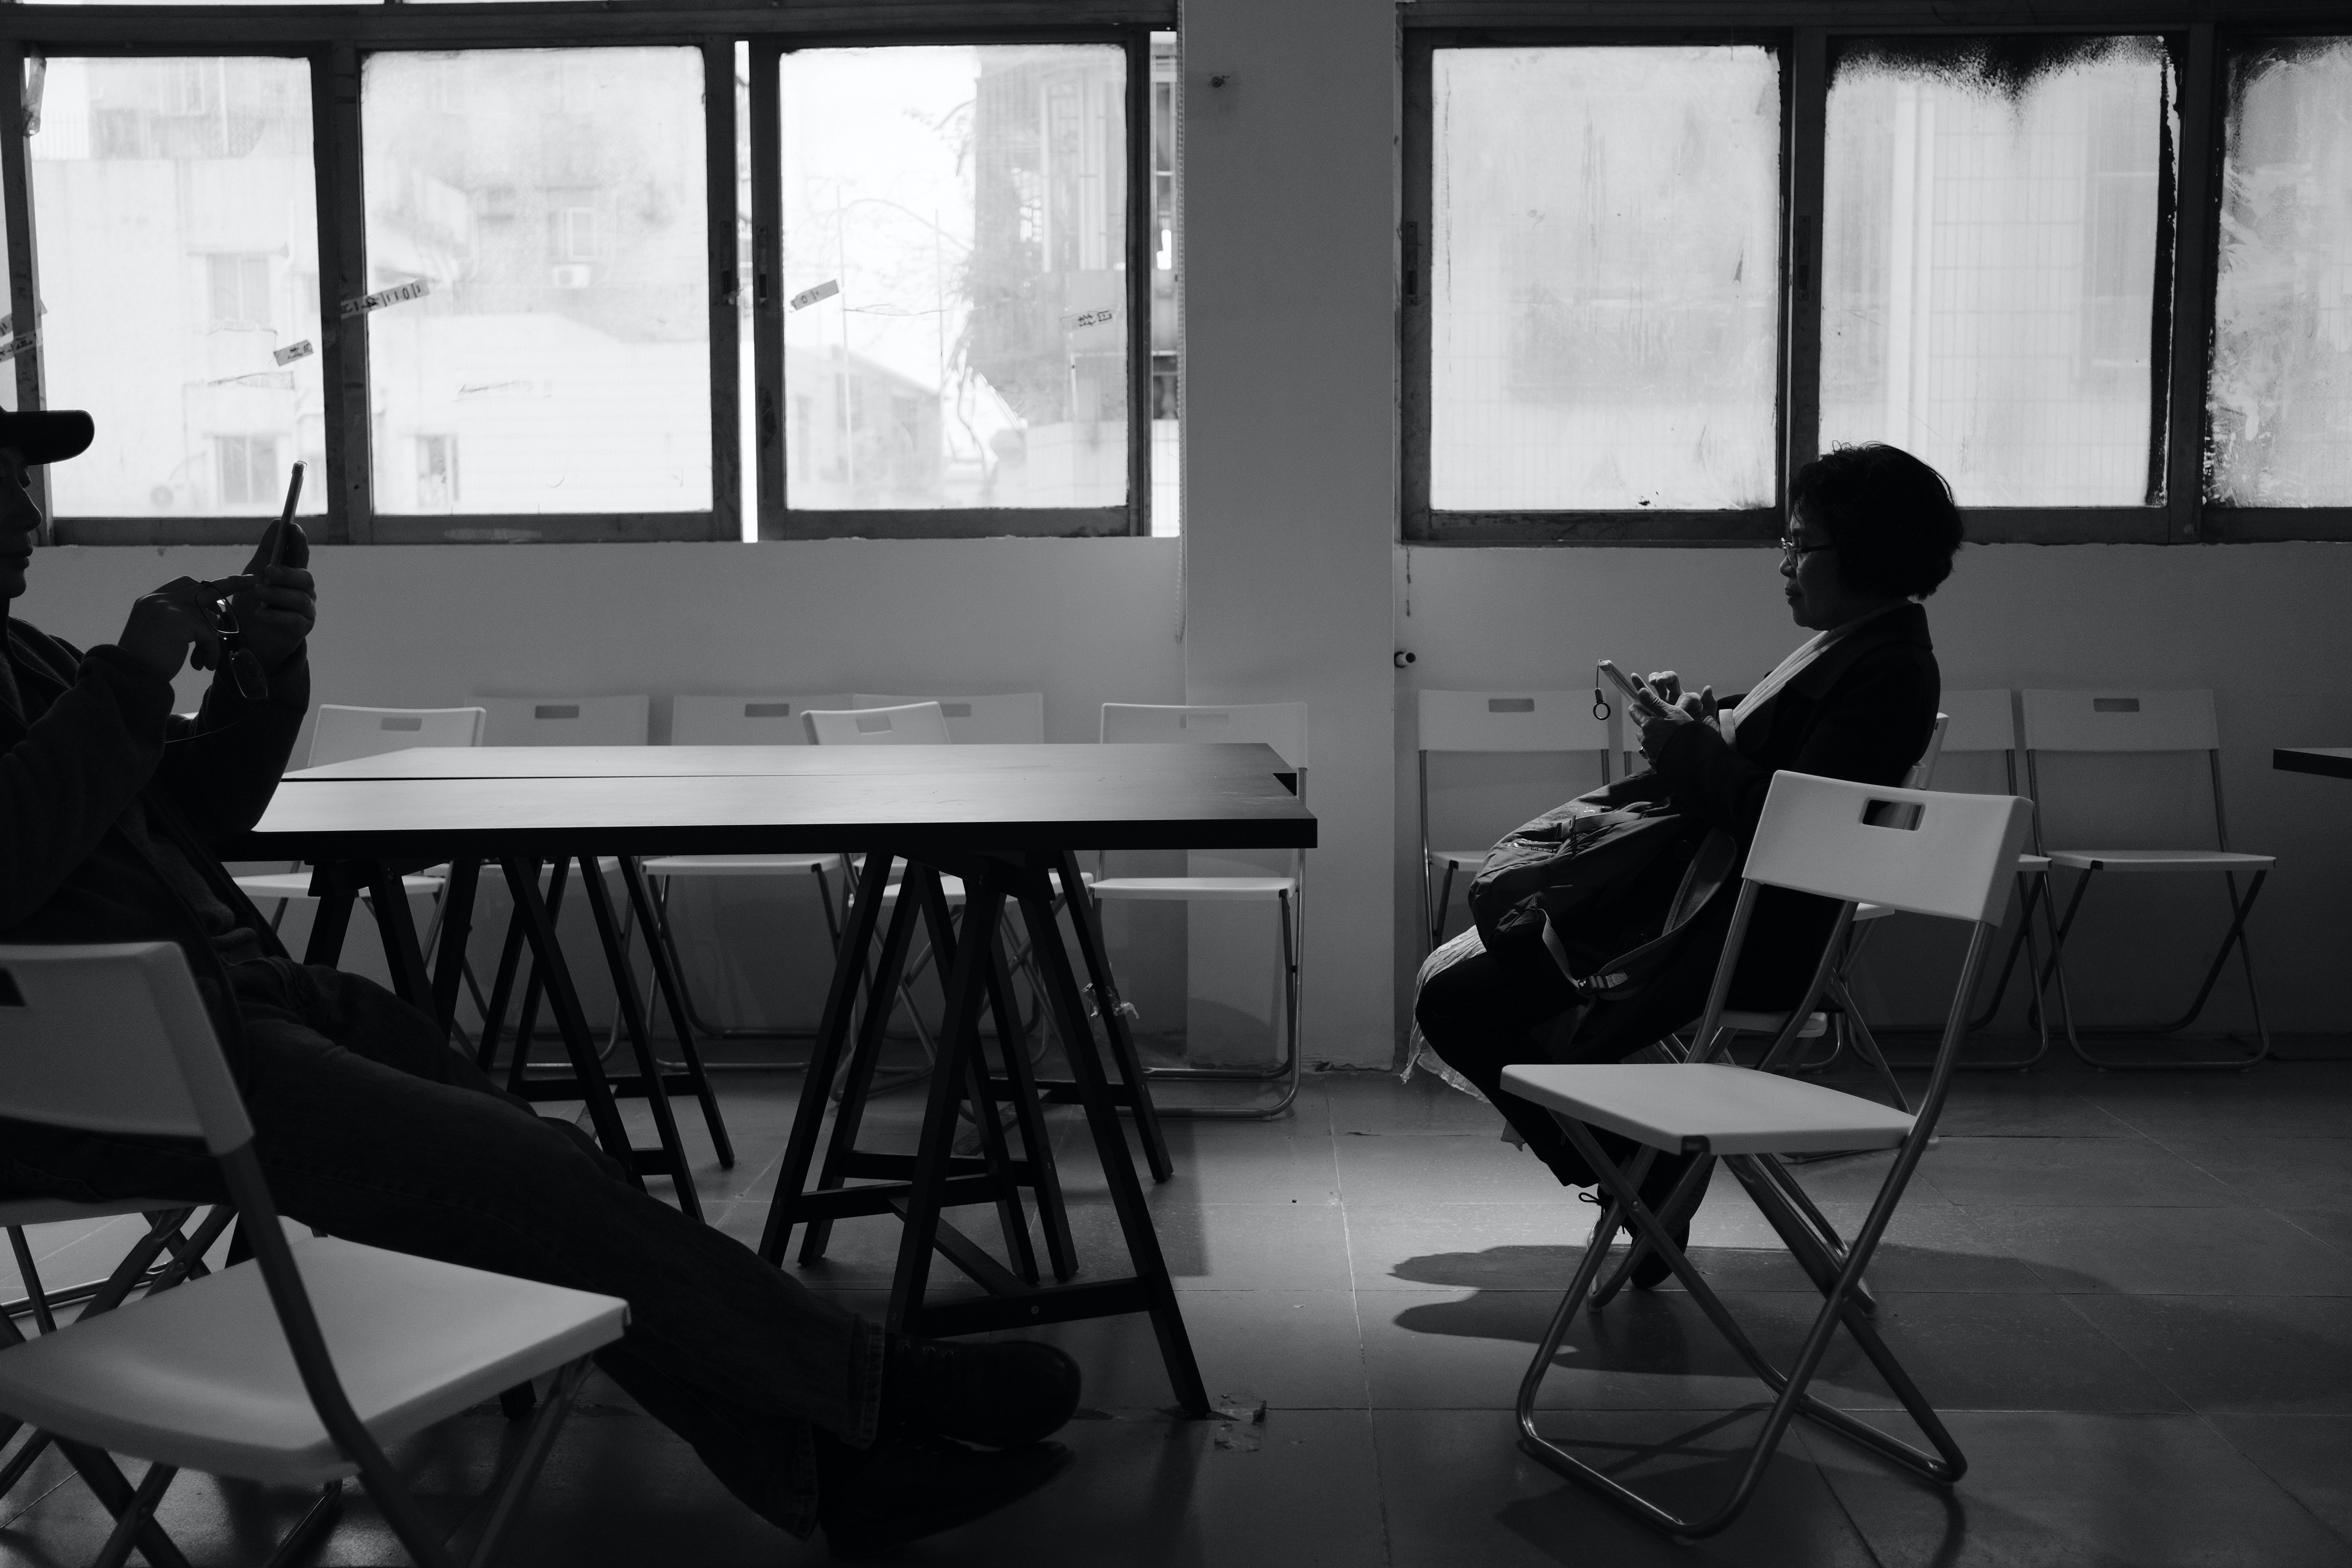 grayscale photo of two person sitting on chair inside the room